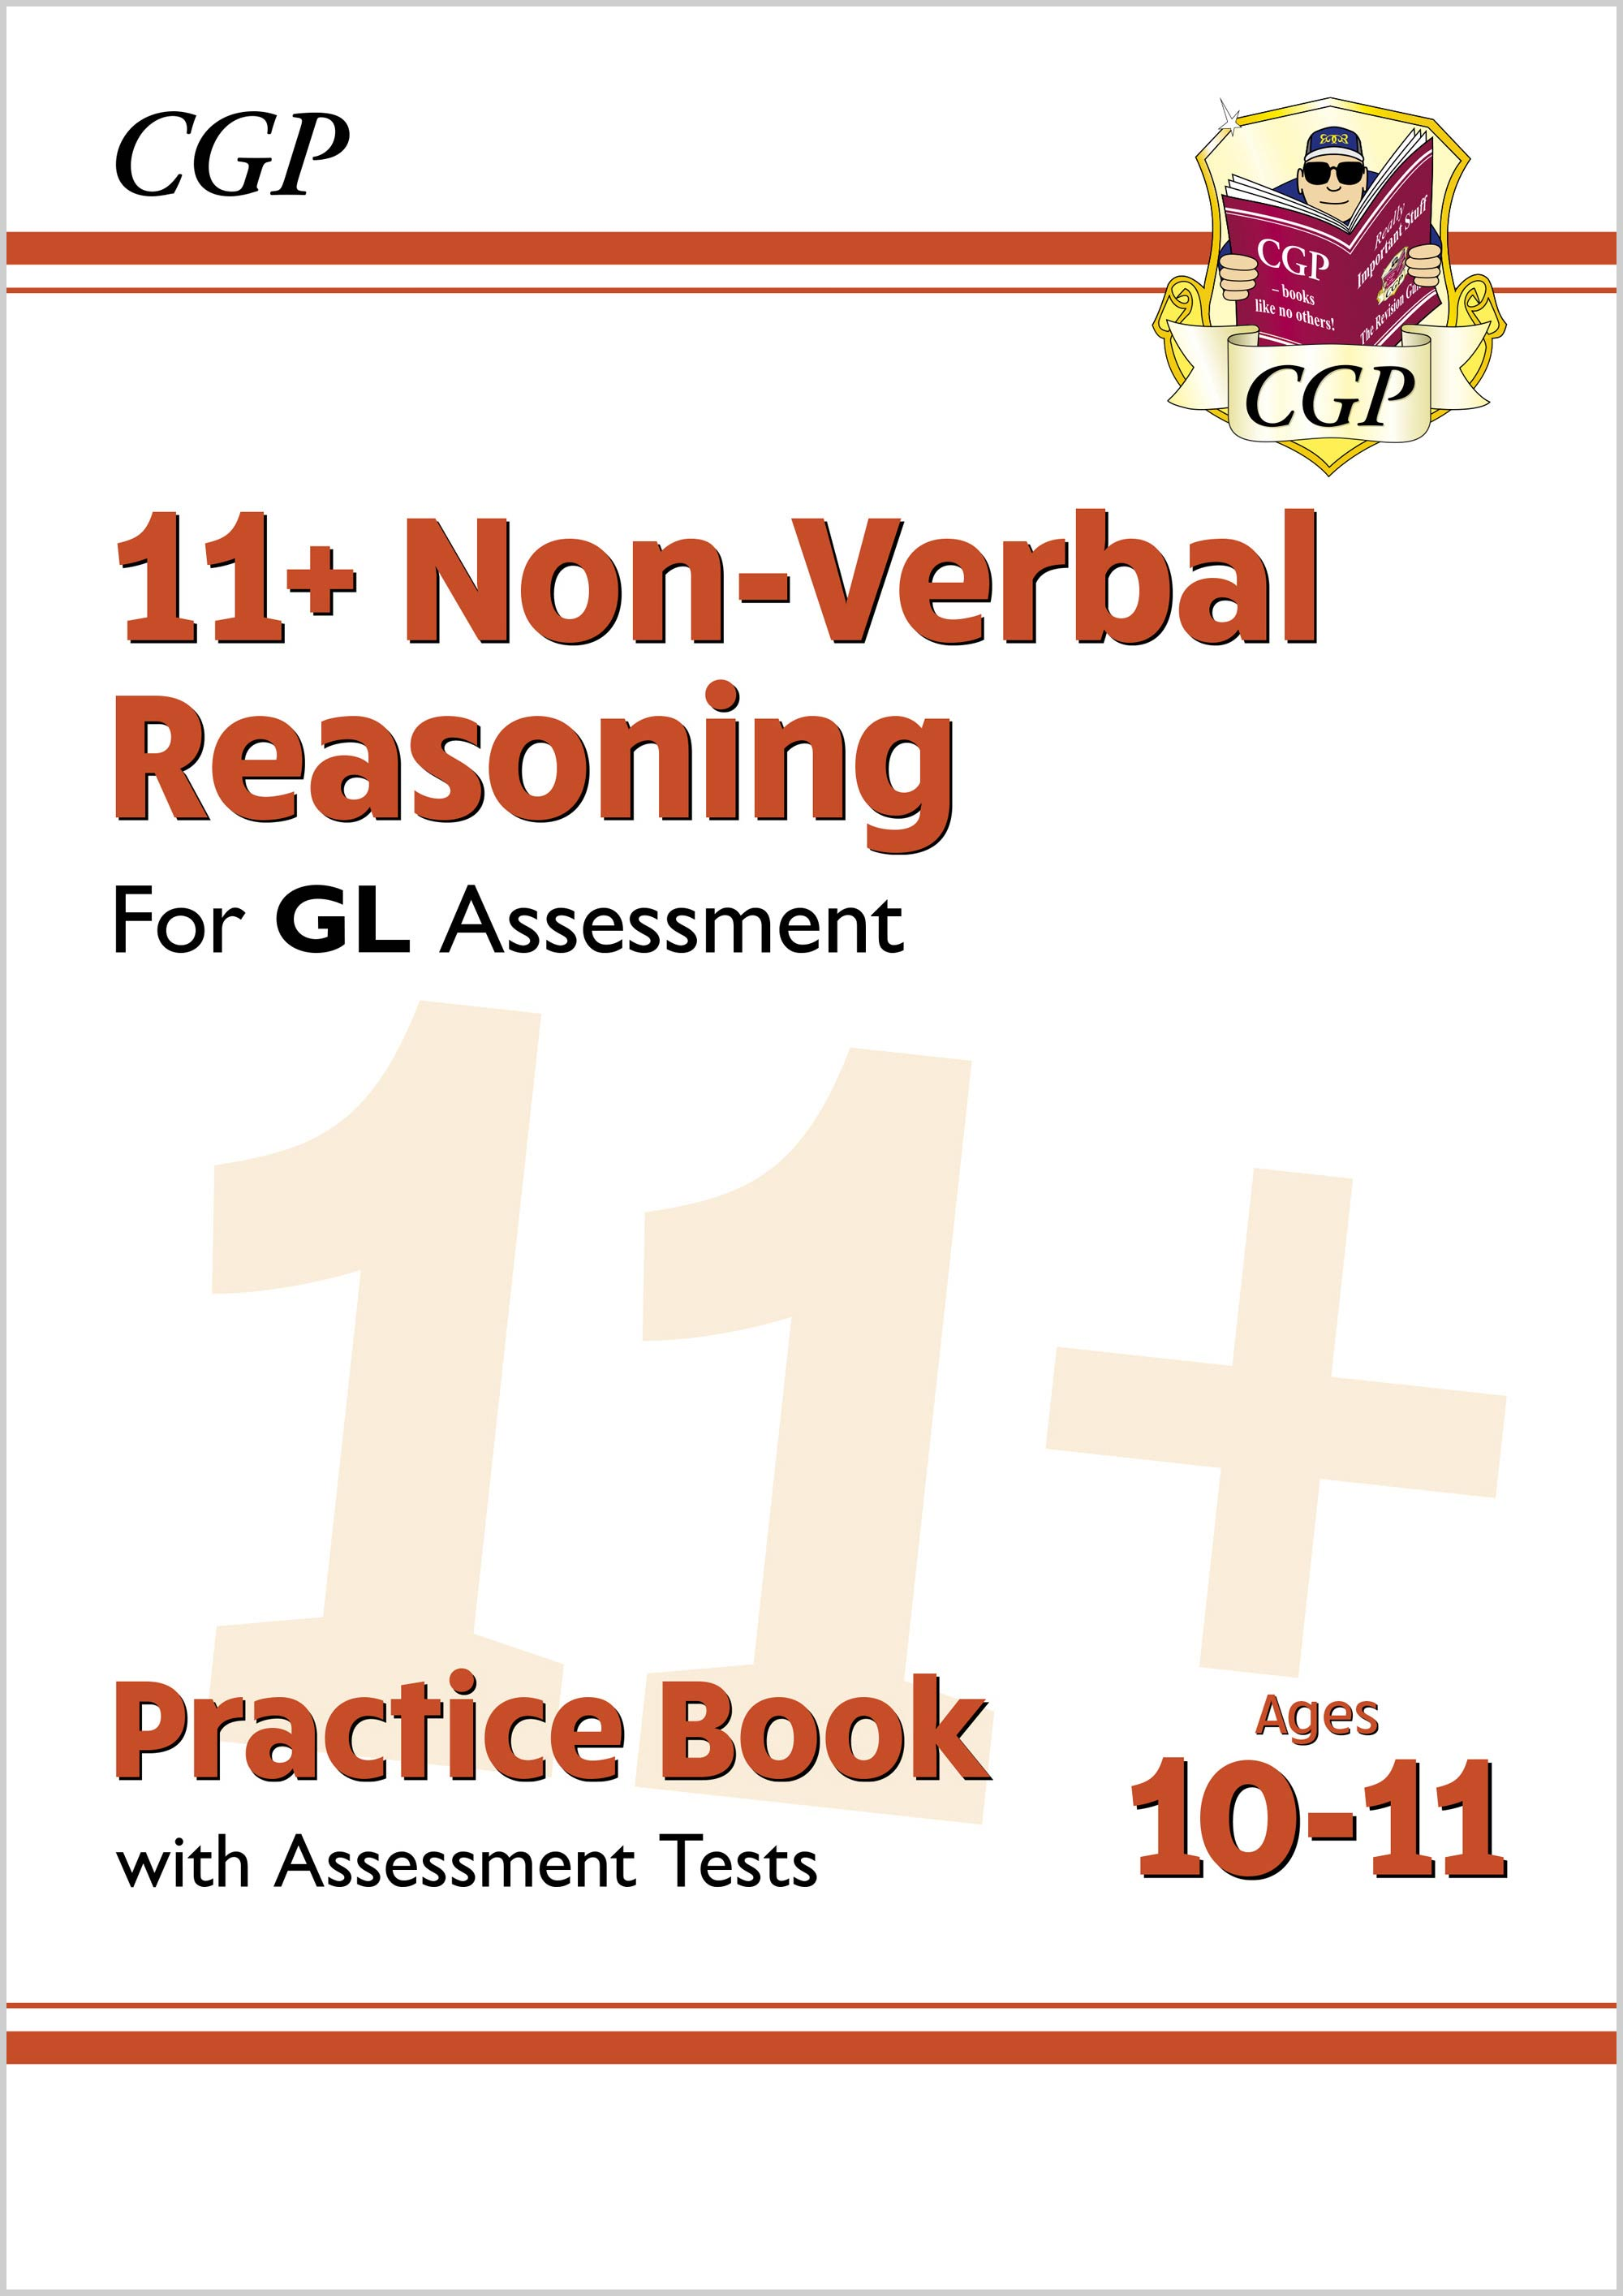 N6QE2DK - New 11+ GL Non-Verbal Reasoning Practice Book & Assessment Tests - Ages 10-11 (with Online